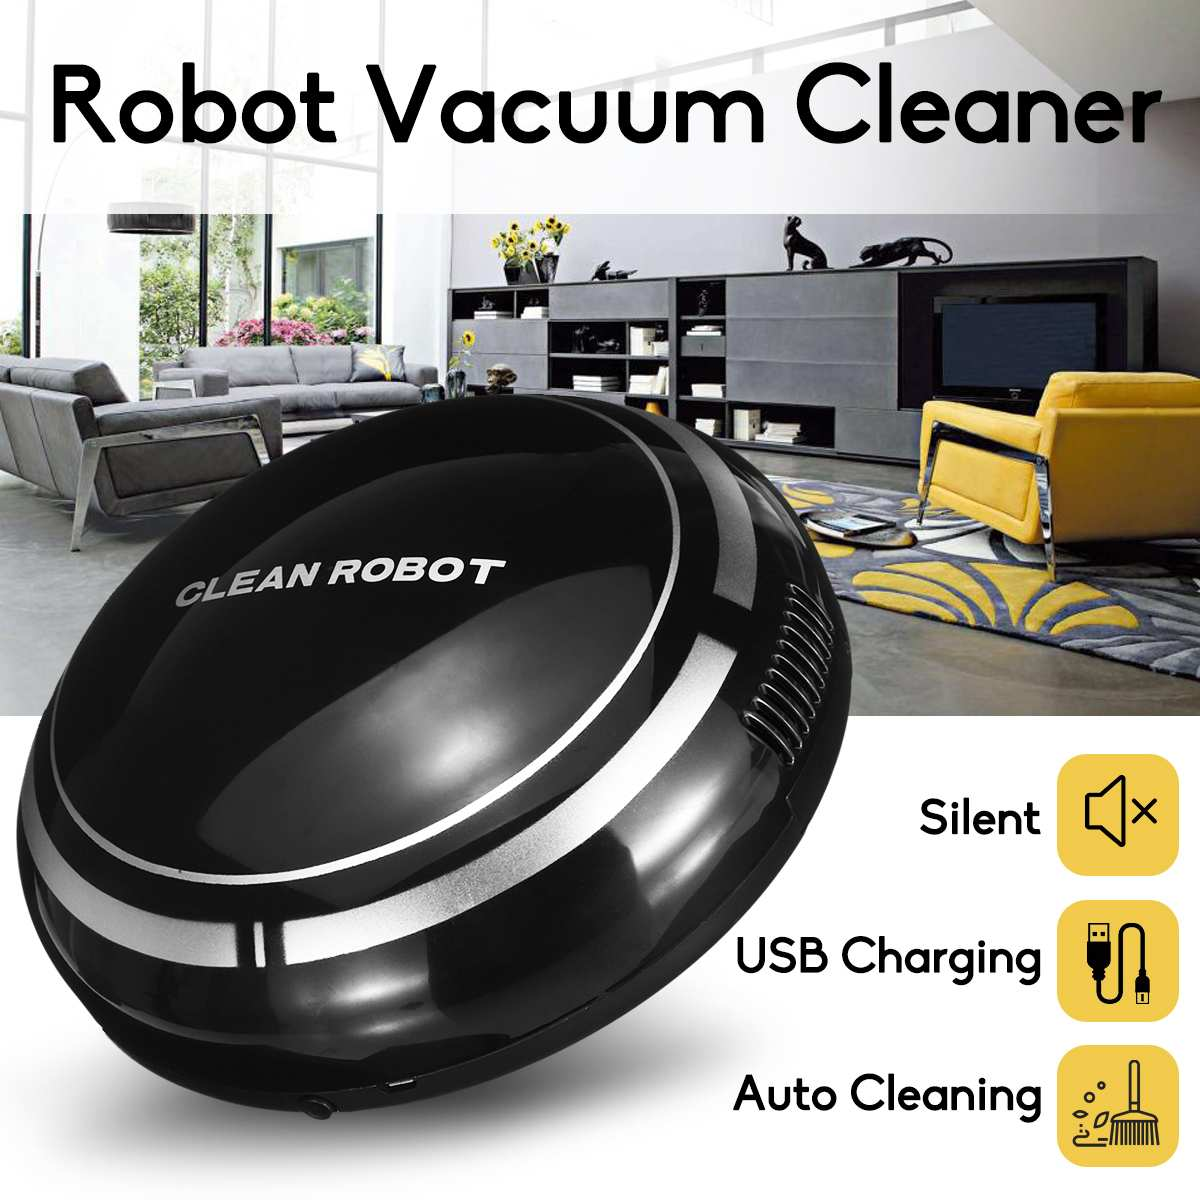 Smart Automatic Robot Vacuum Cleaning Machine Intelligent Floor Sweeping Dust Catcher Carpet Cleaner For Home Automatic Cleaning(China)